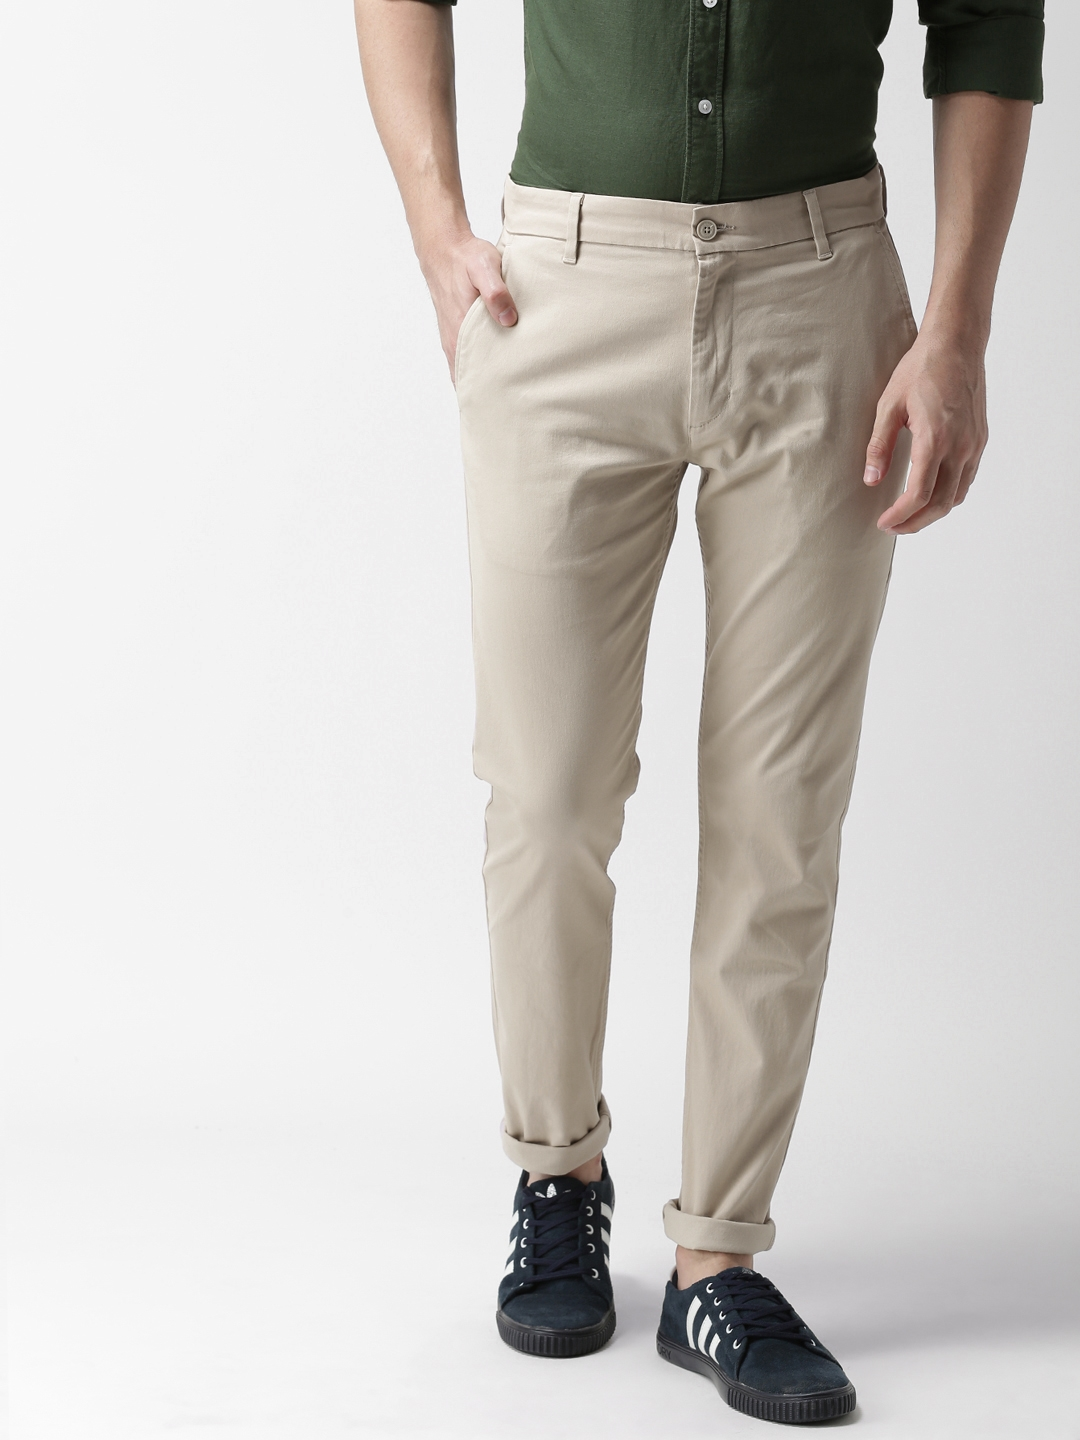 63c6a19e0c1 Buy Levis Men Beige Tapered Fit Solid Chinos 512 - Trousers for Men ...